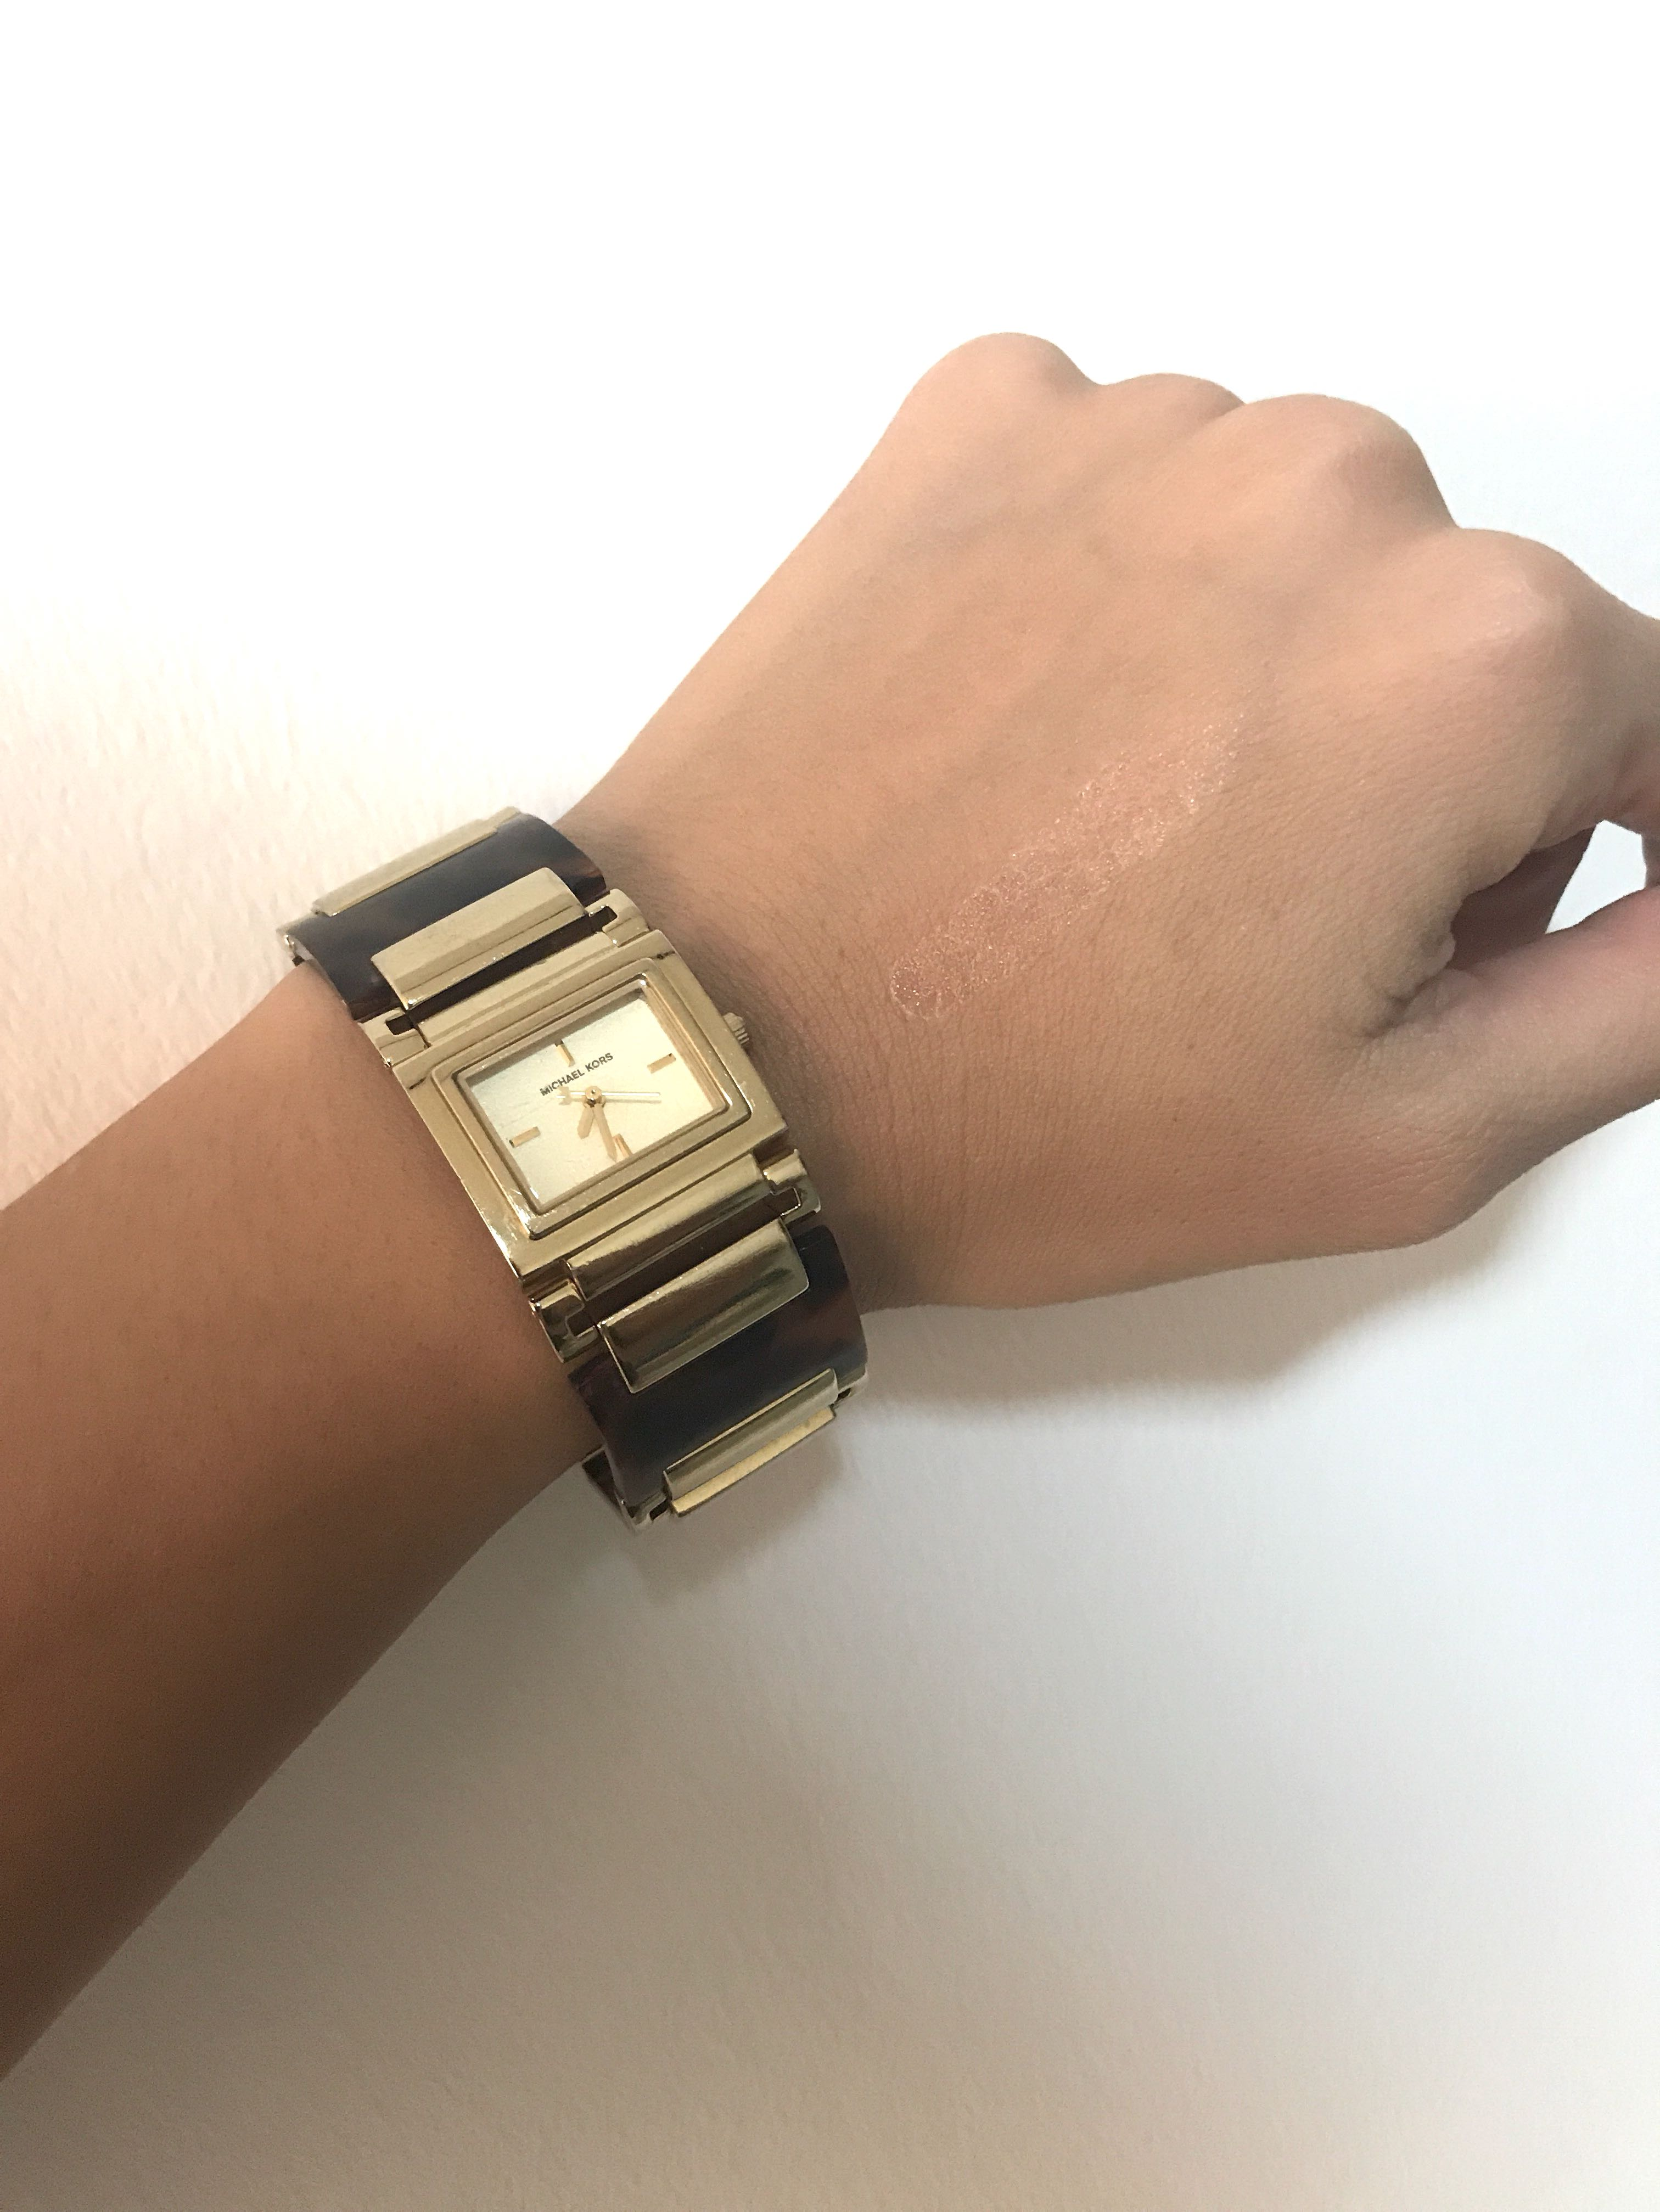 07ab29a5b296 Michael Kors turtle shell watch authentic